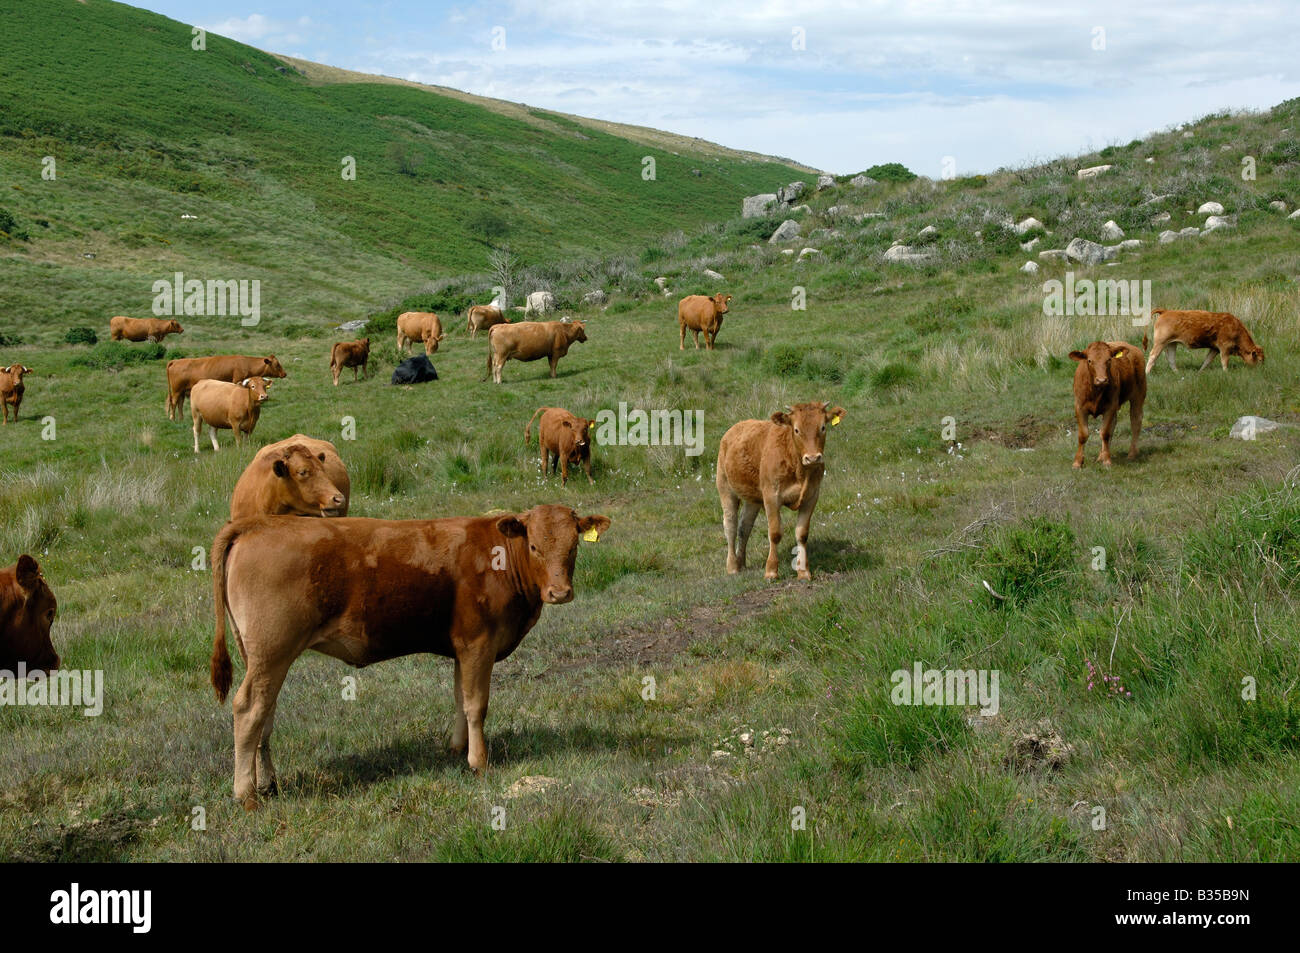 British Limousin cows grazing close to the River Dart in Darmoor National Park - Stock Image